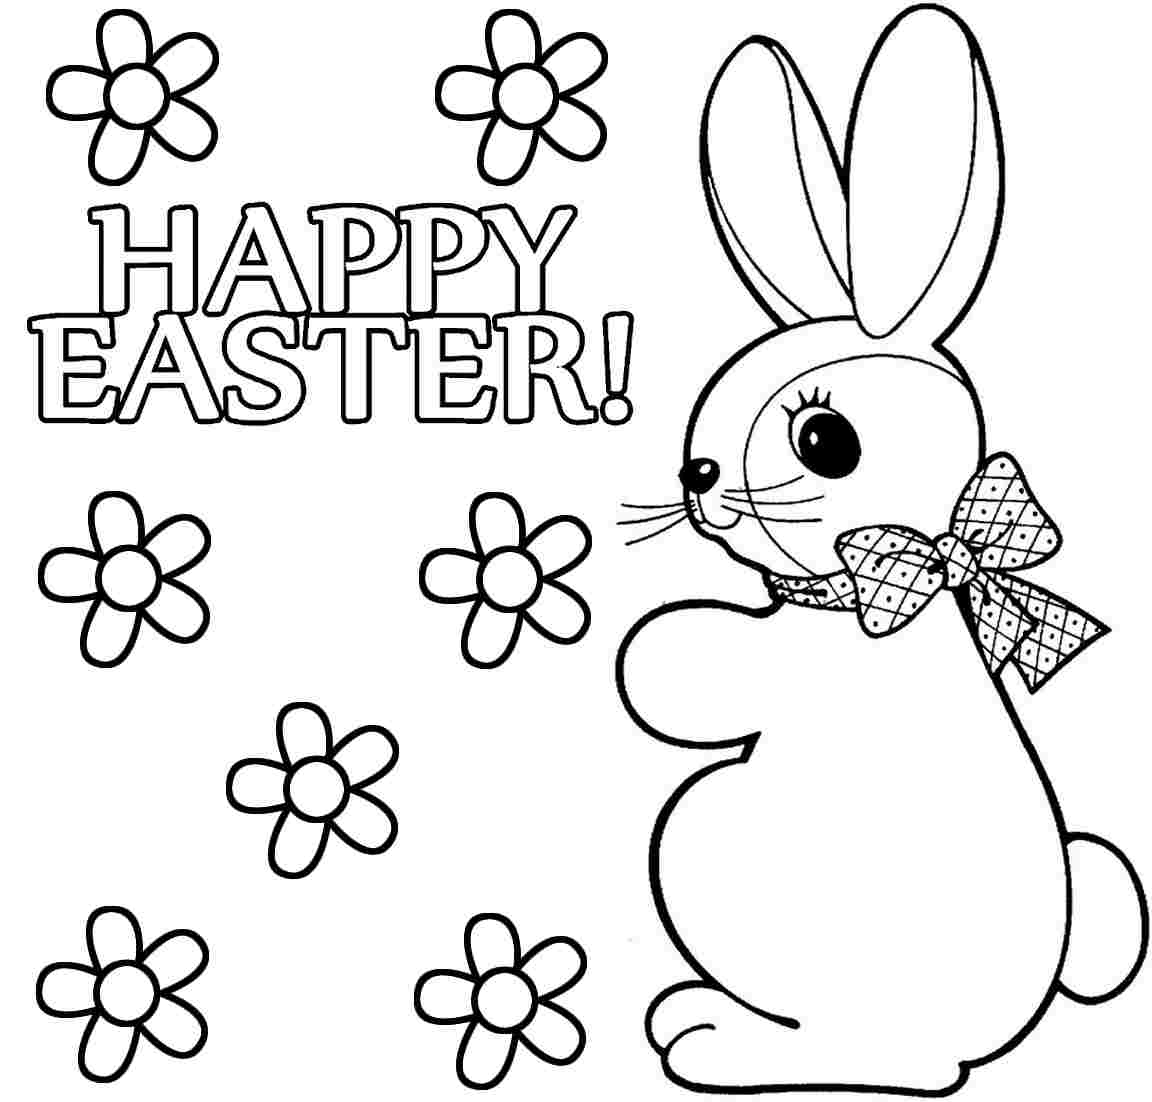 Easter Bunny Coloring Pages To Print To Download And Print